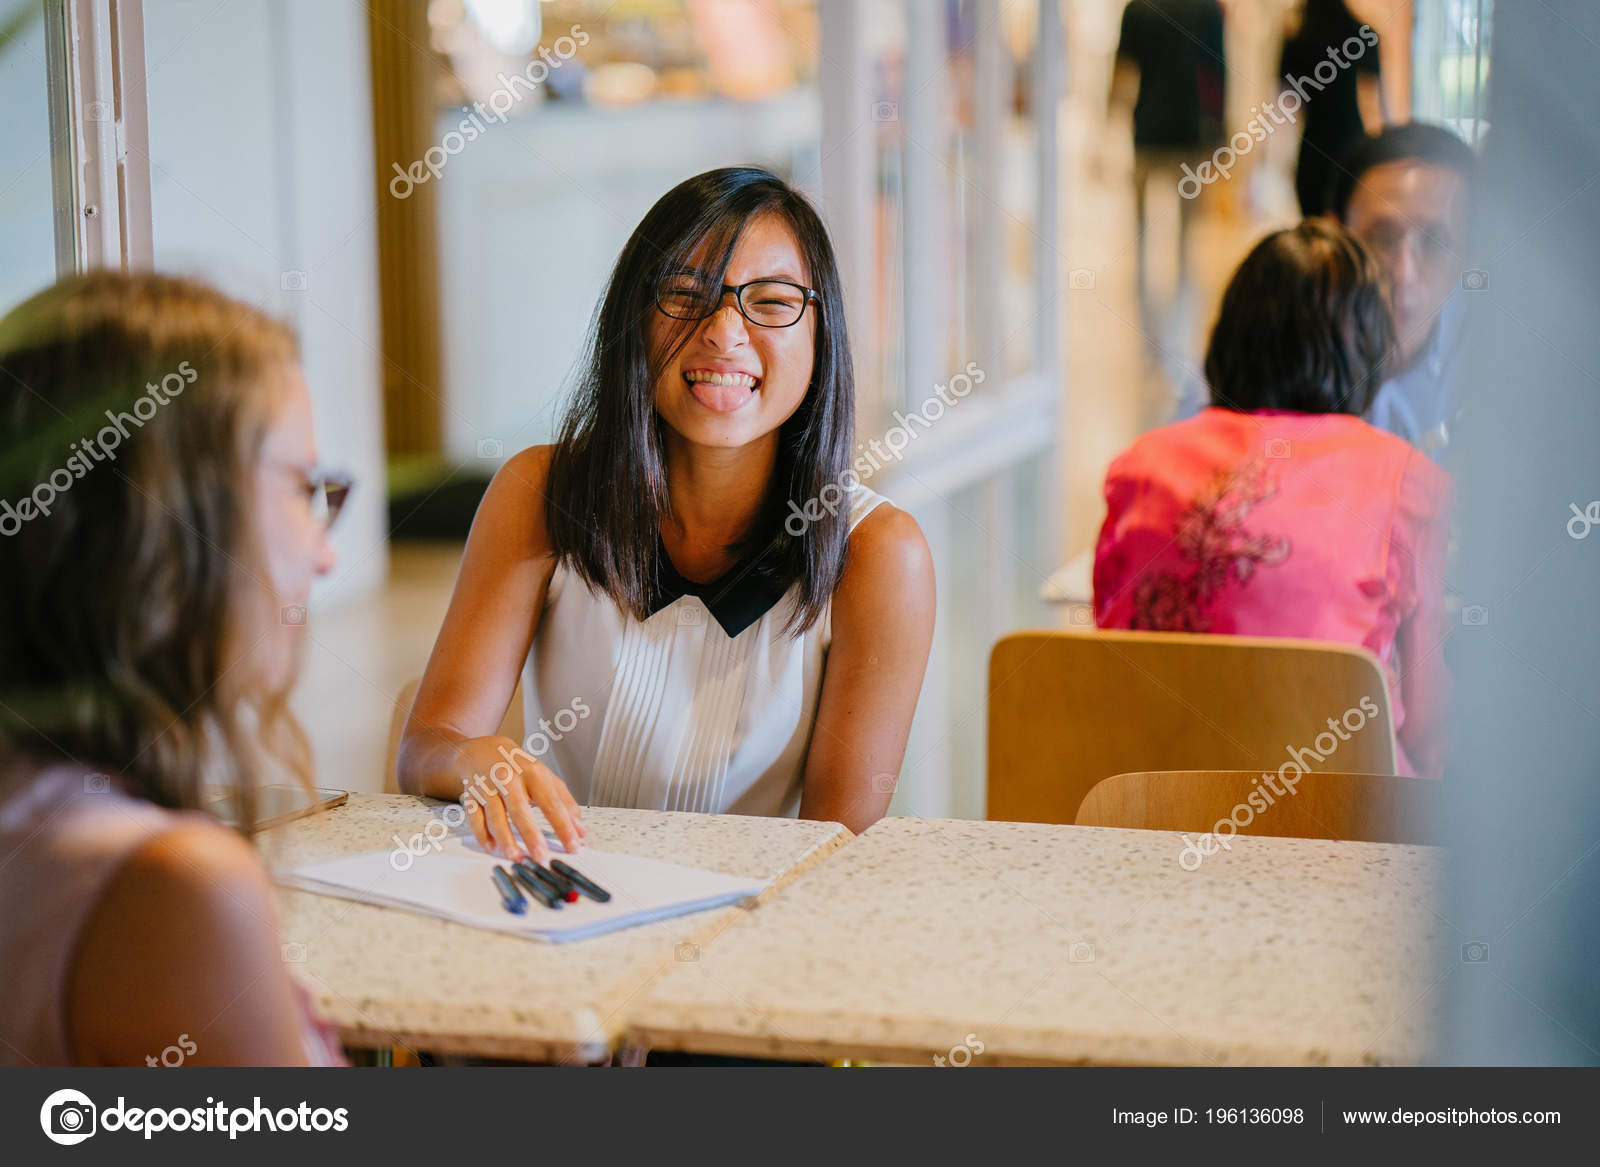 Two women colleagues have a business discussion in an office during the  day. One is a Chinese Asian woman and the other a Caucasian White woman.